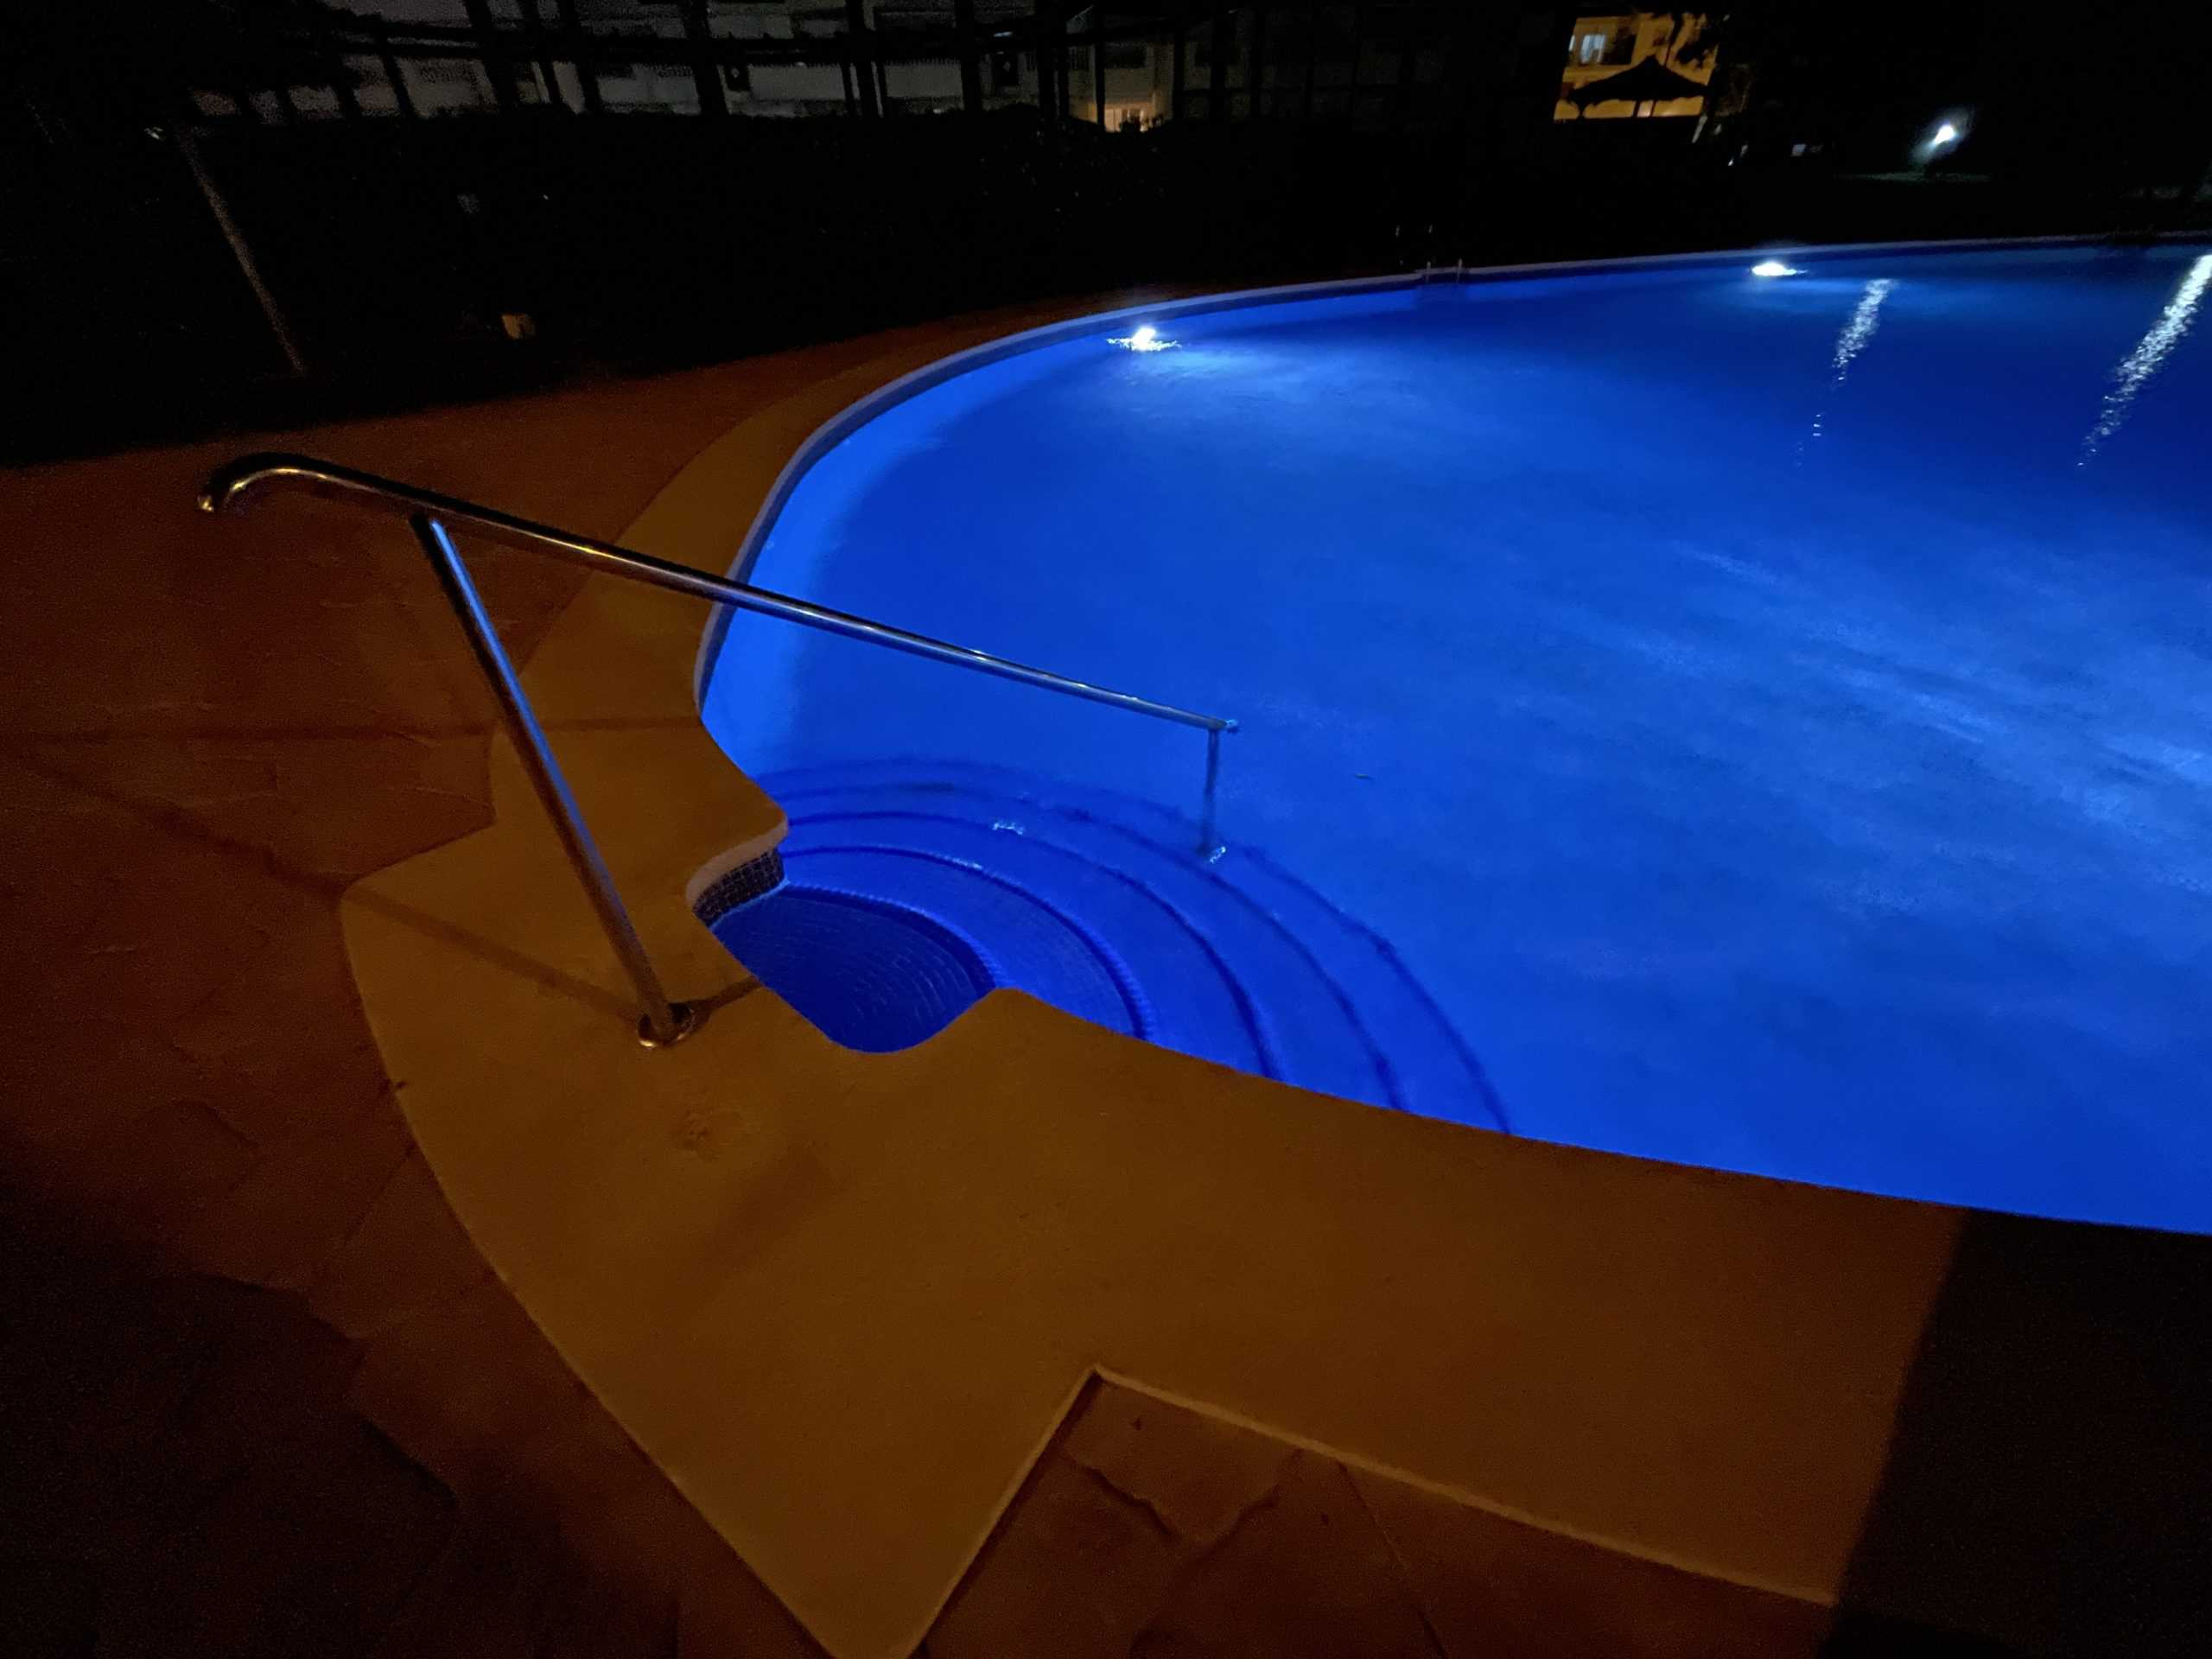 Don't Be Shocked: How to Keep Your Pool Wiring Safe This Summer